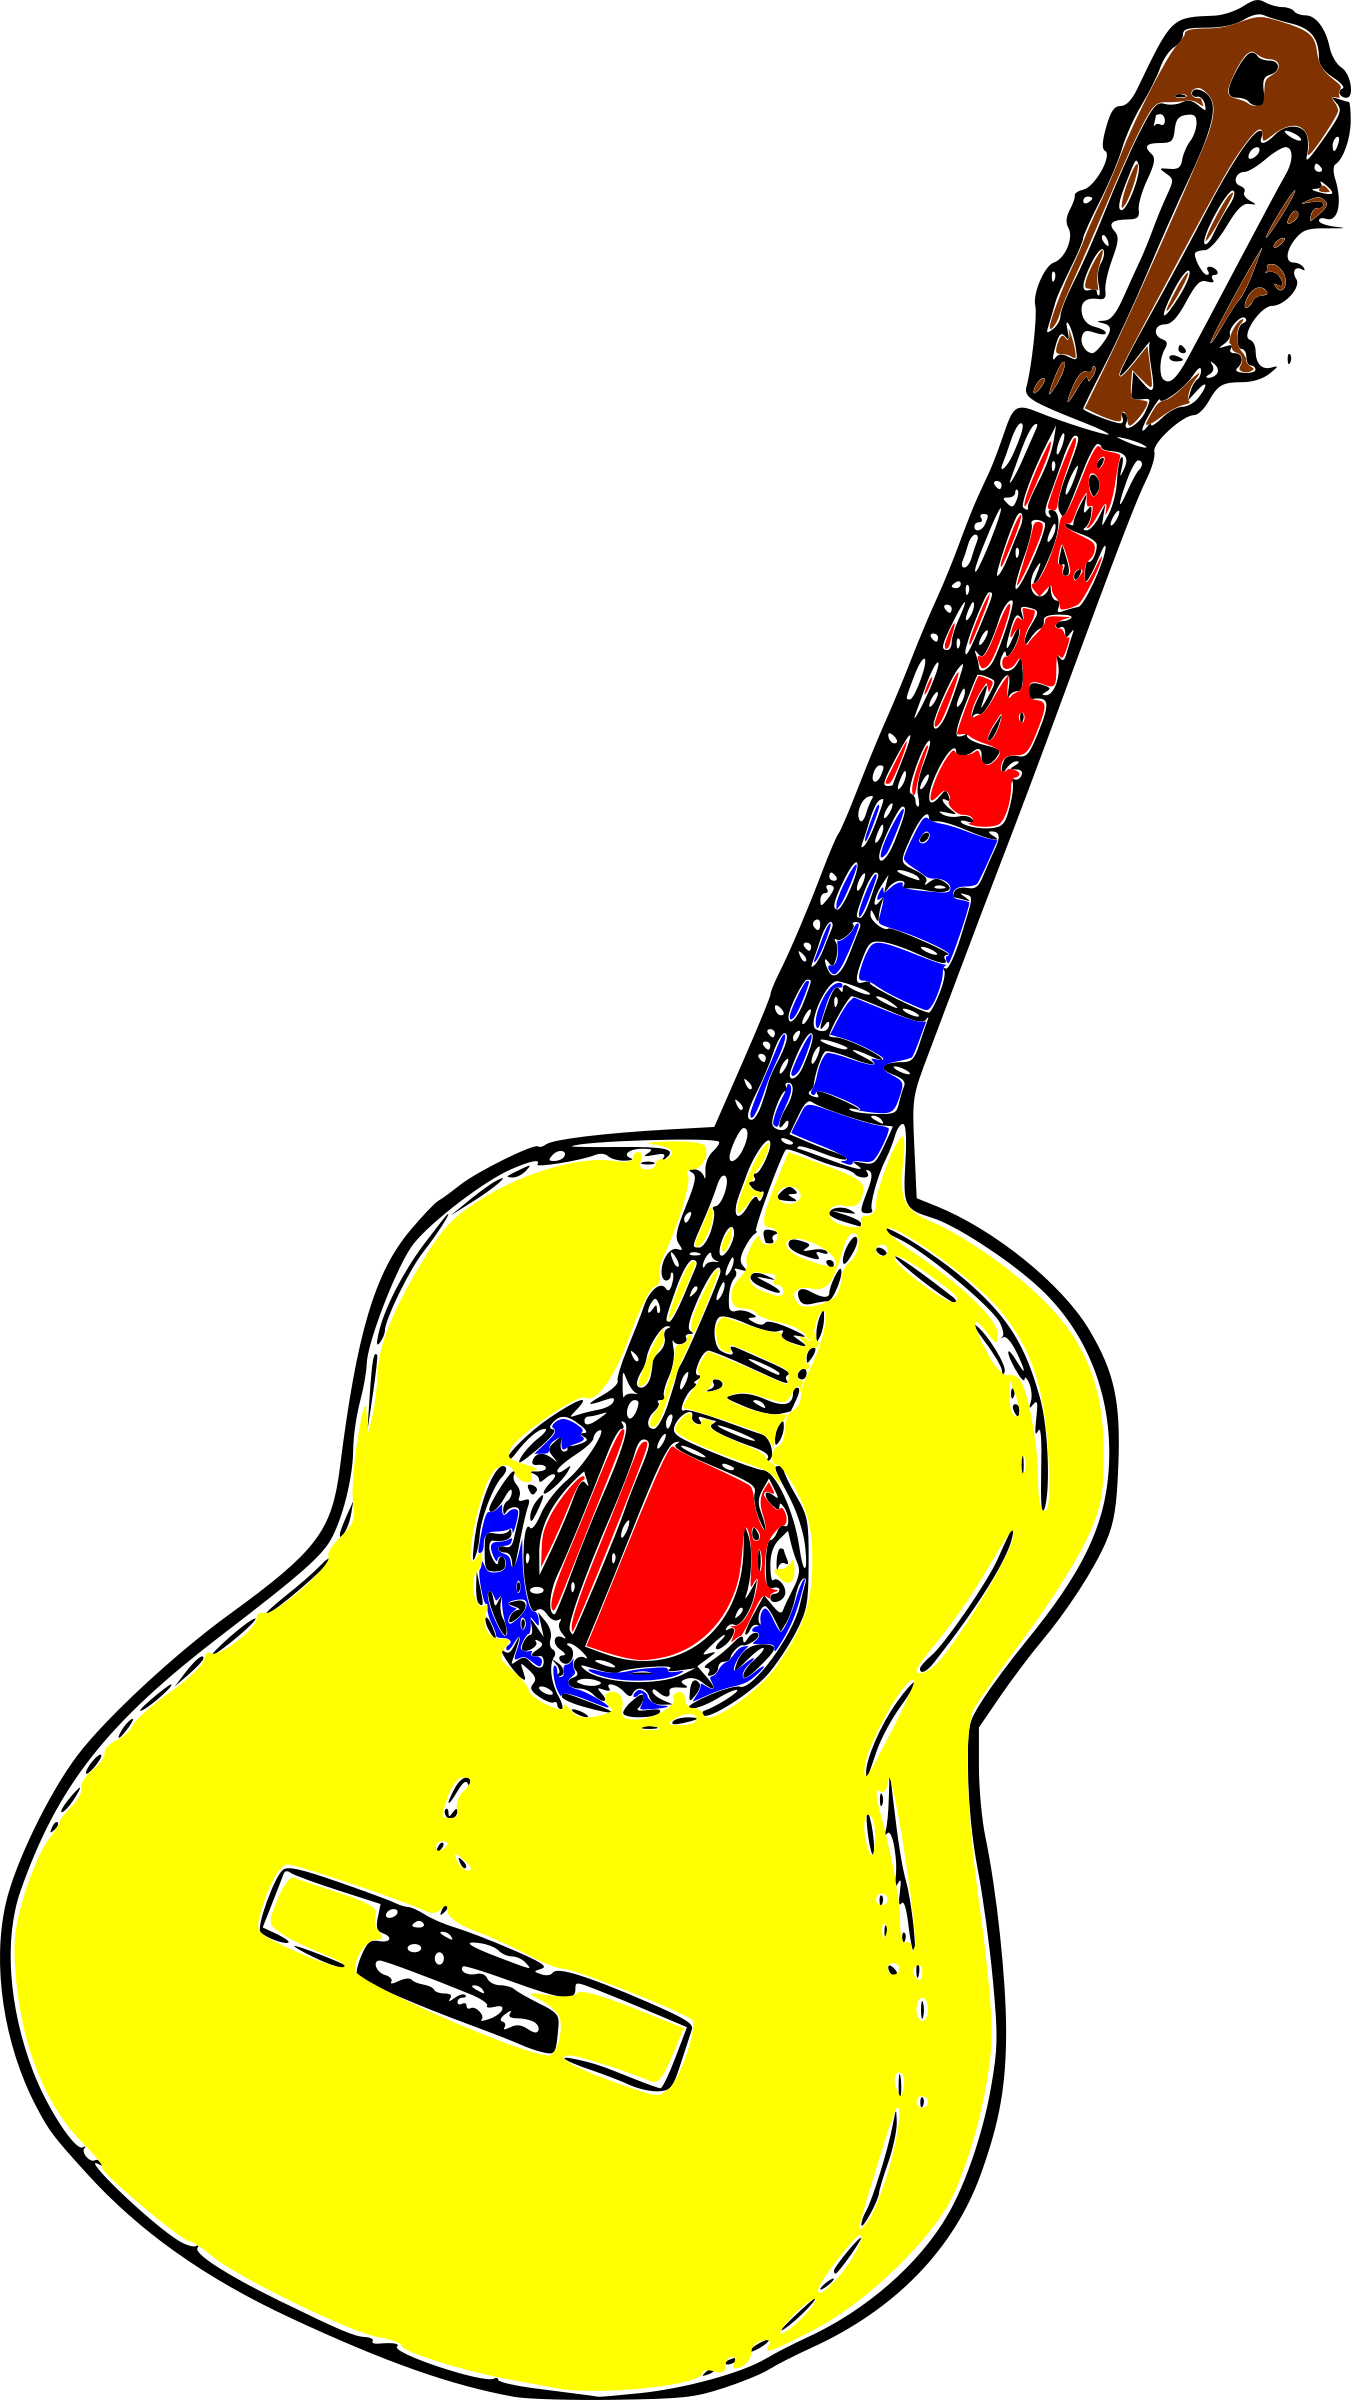 Guitarra Colombia by Lala Loaiza